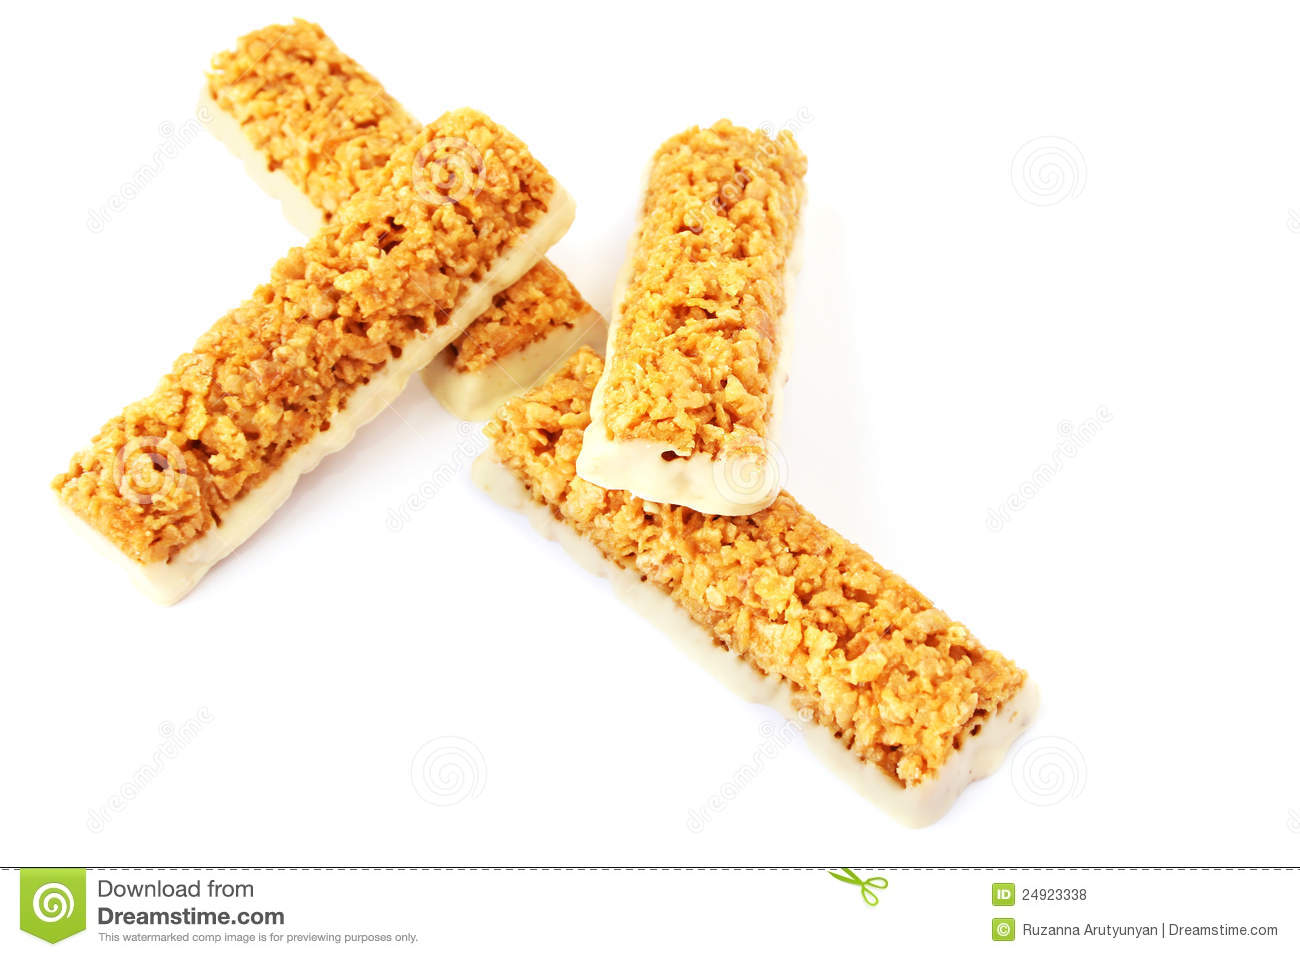 Cereal Bars Royalty Free Stock Photos - Image: 24923338